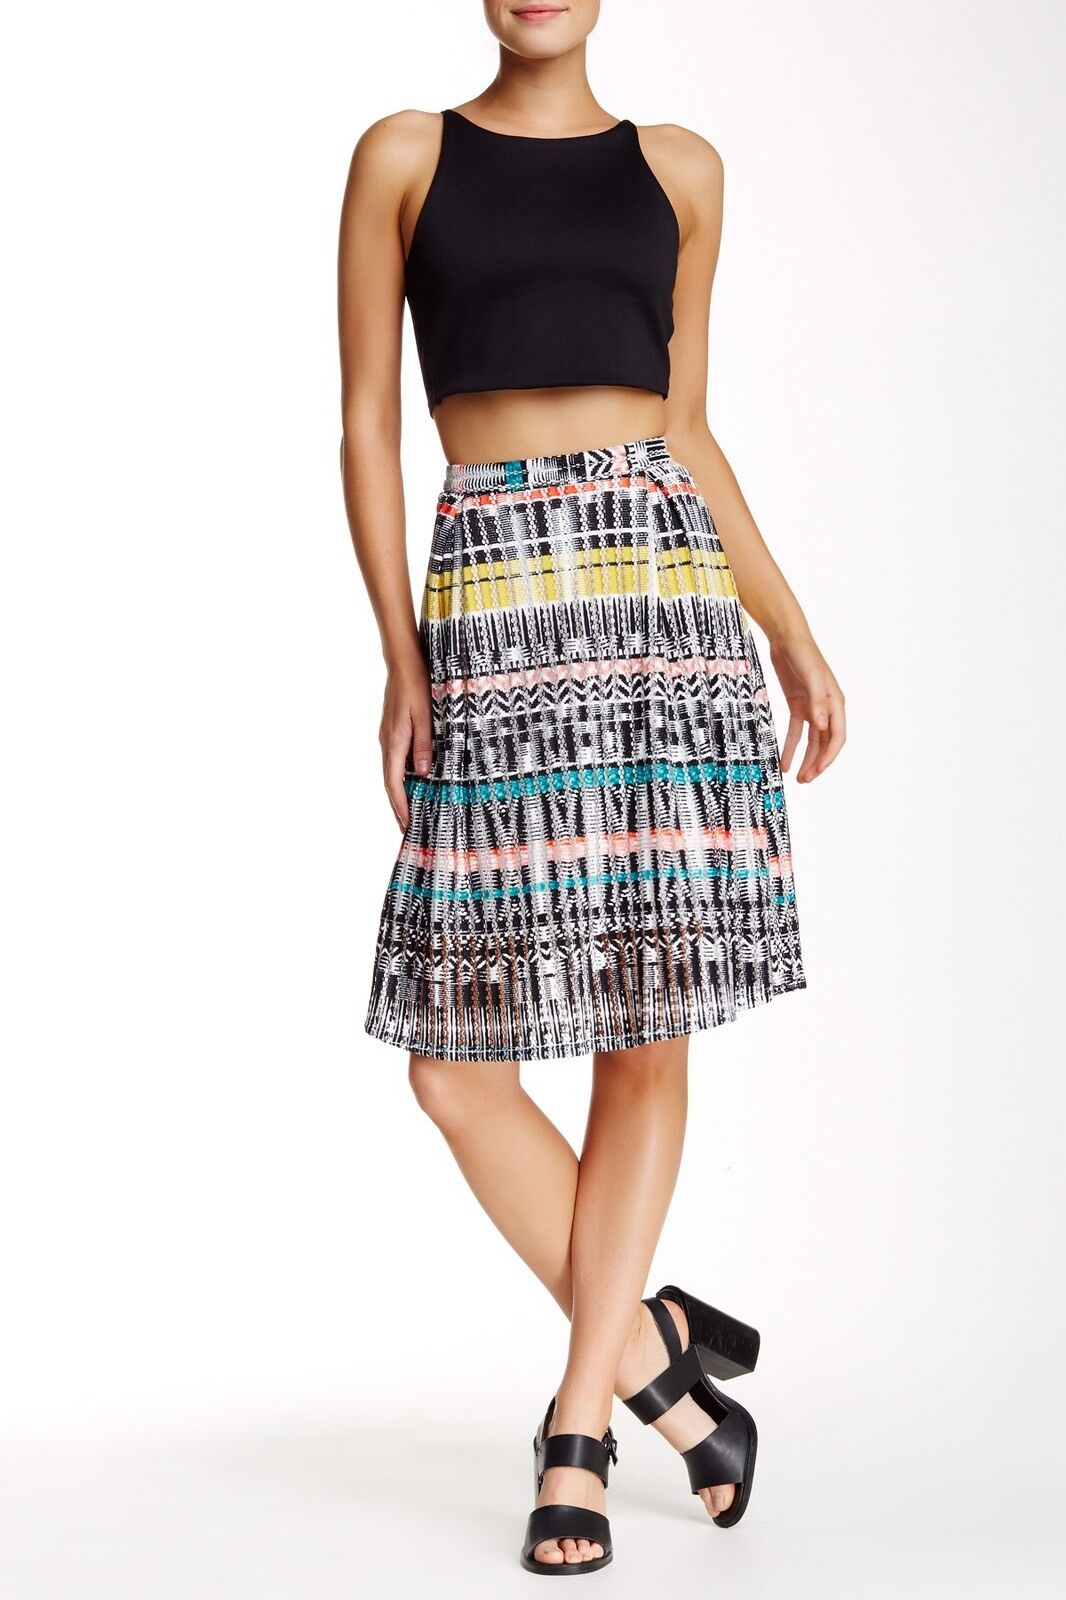 NWT ROMEO & JULIET COUTURE Geometric Print Pleated Skirt M MEDIUM NEW